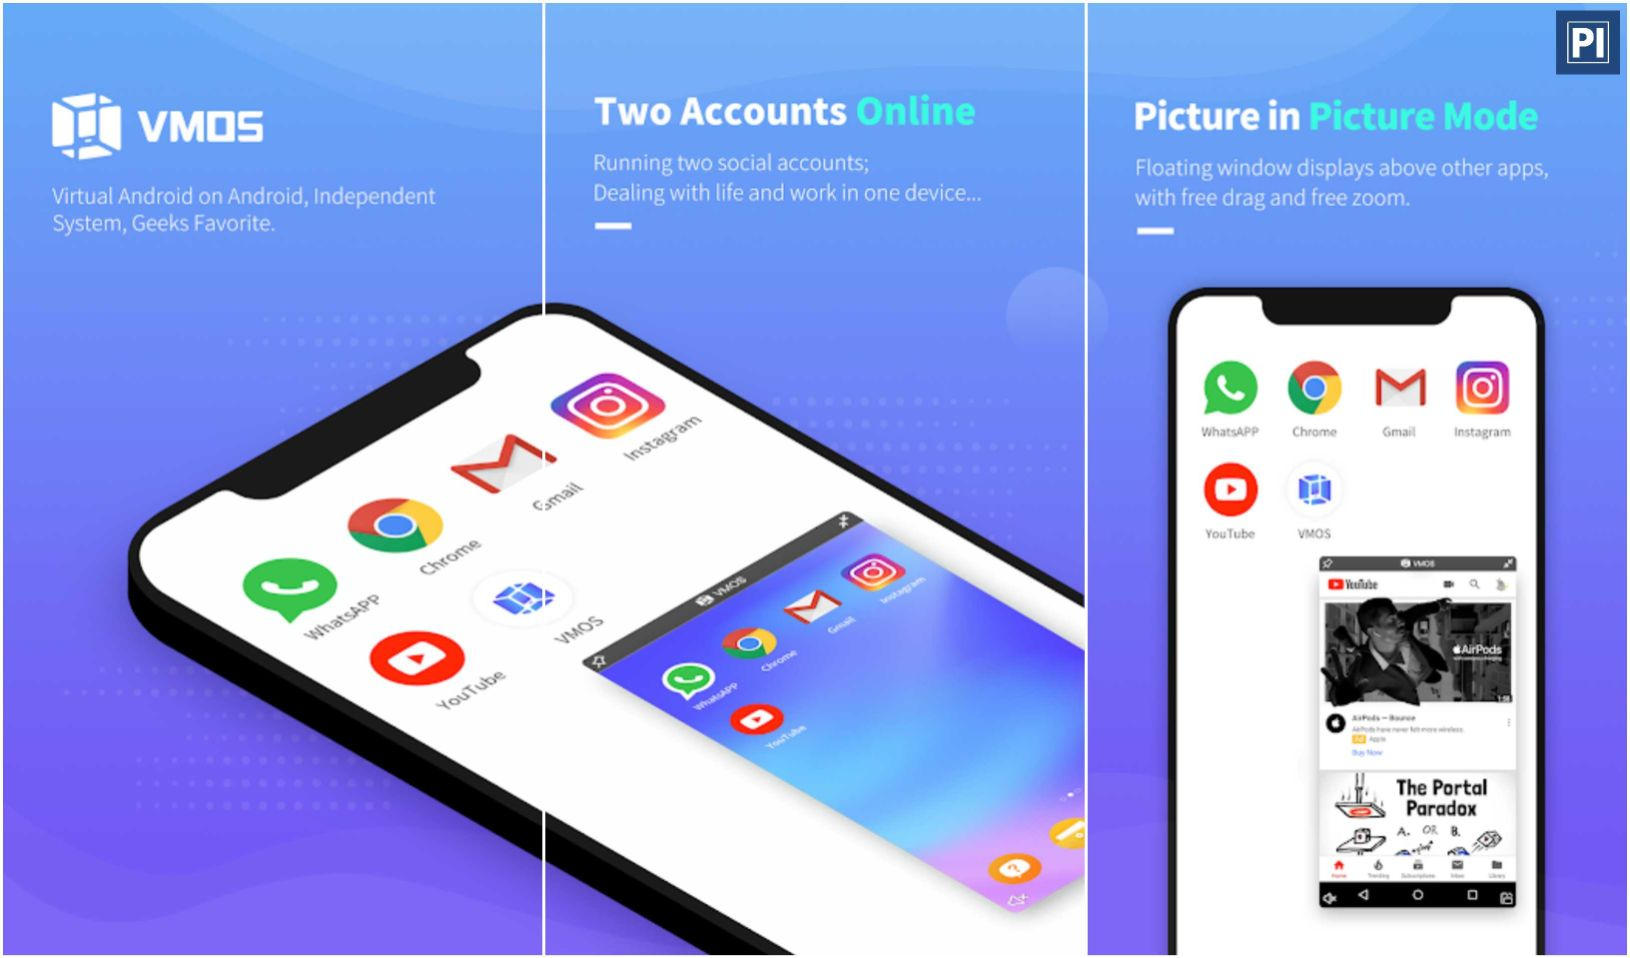 VMOS Top 10 Unique & Best Free Android Apps – October 2019